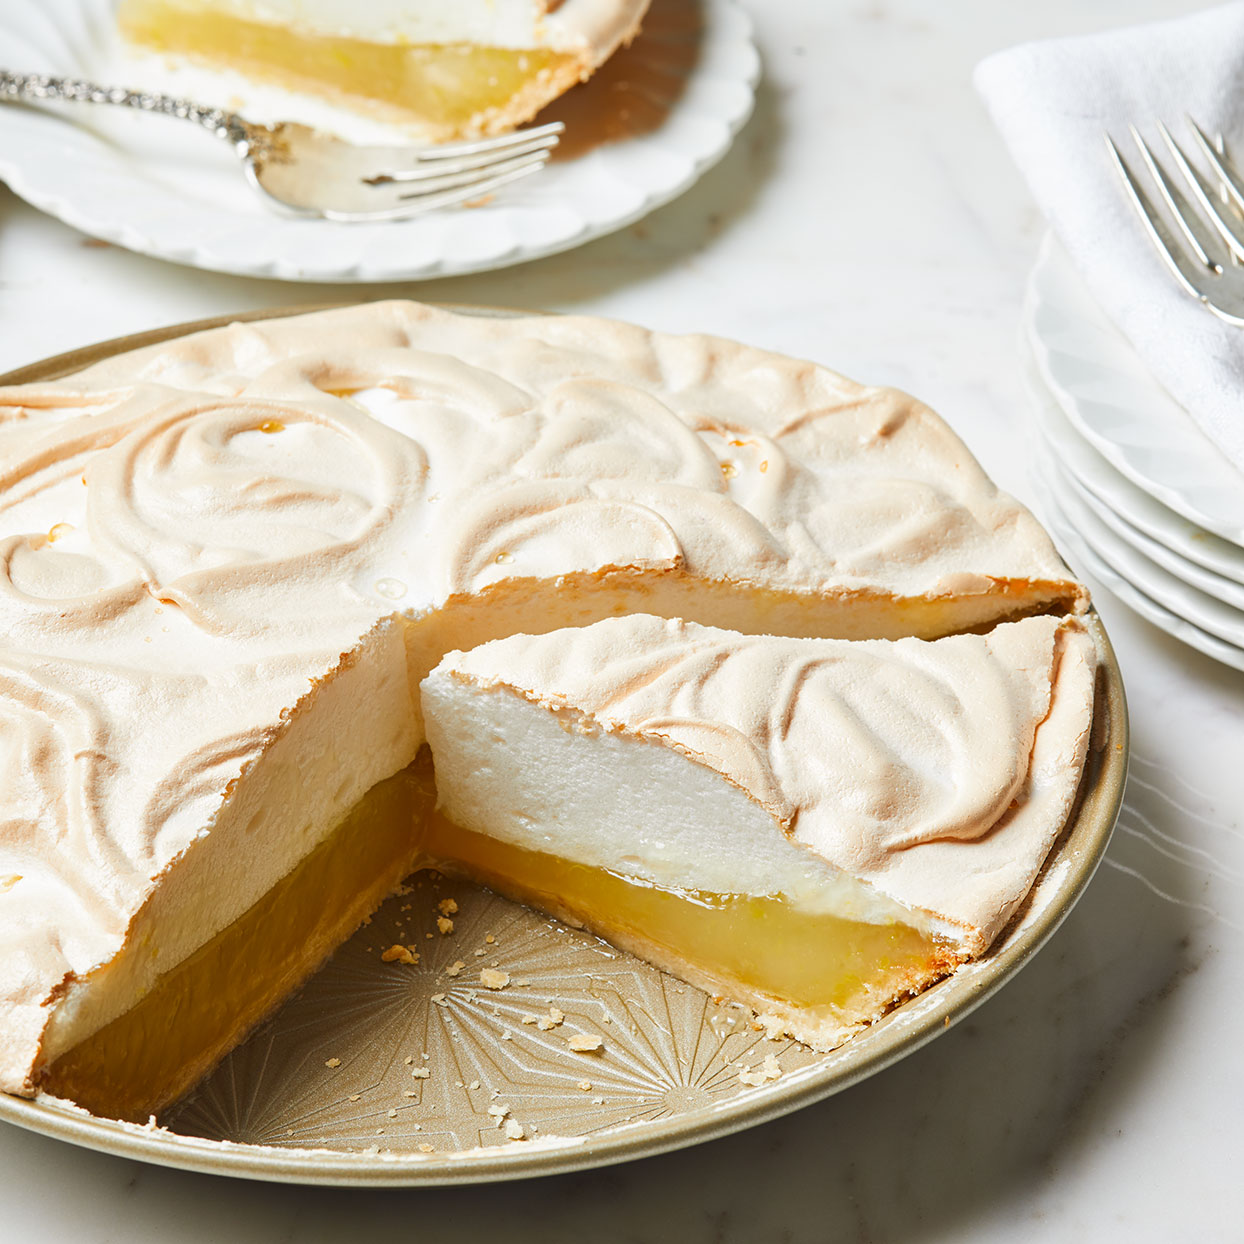 Light Lemon Meringue Pie Trusted Brands